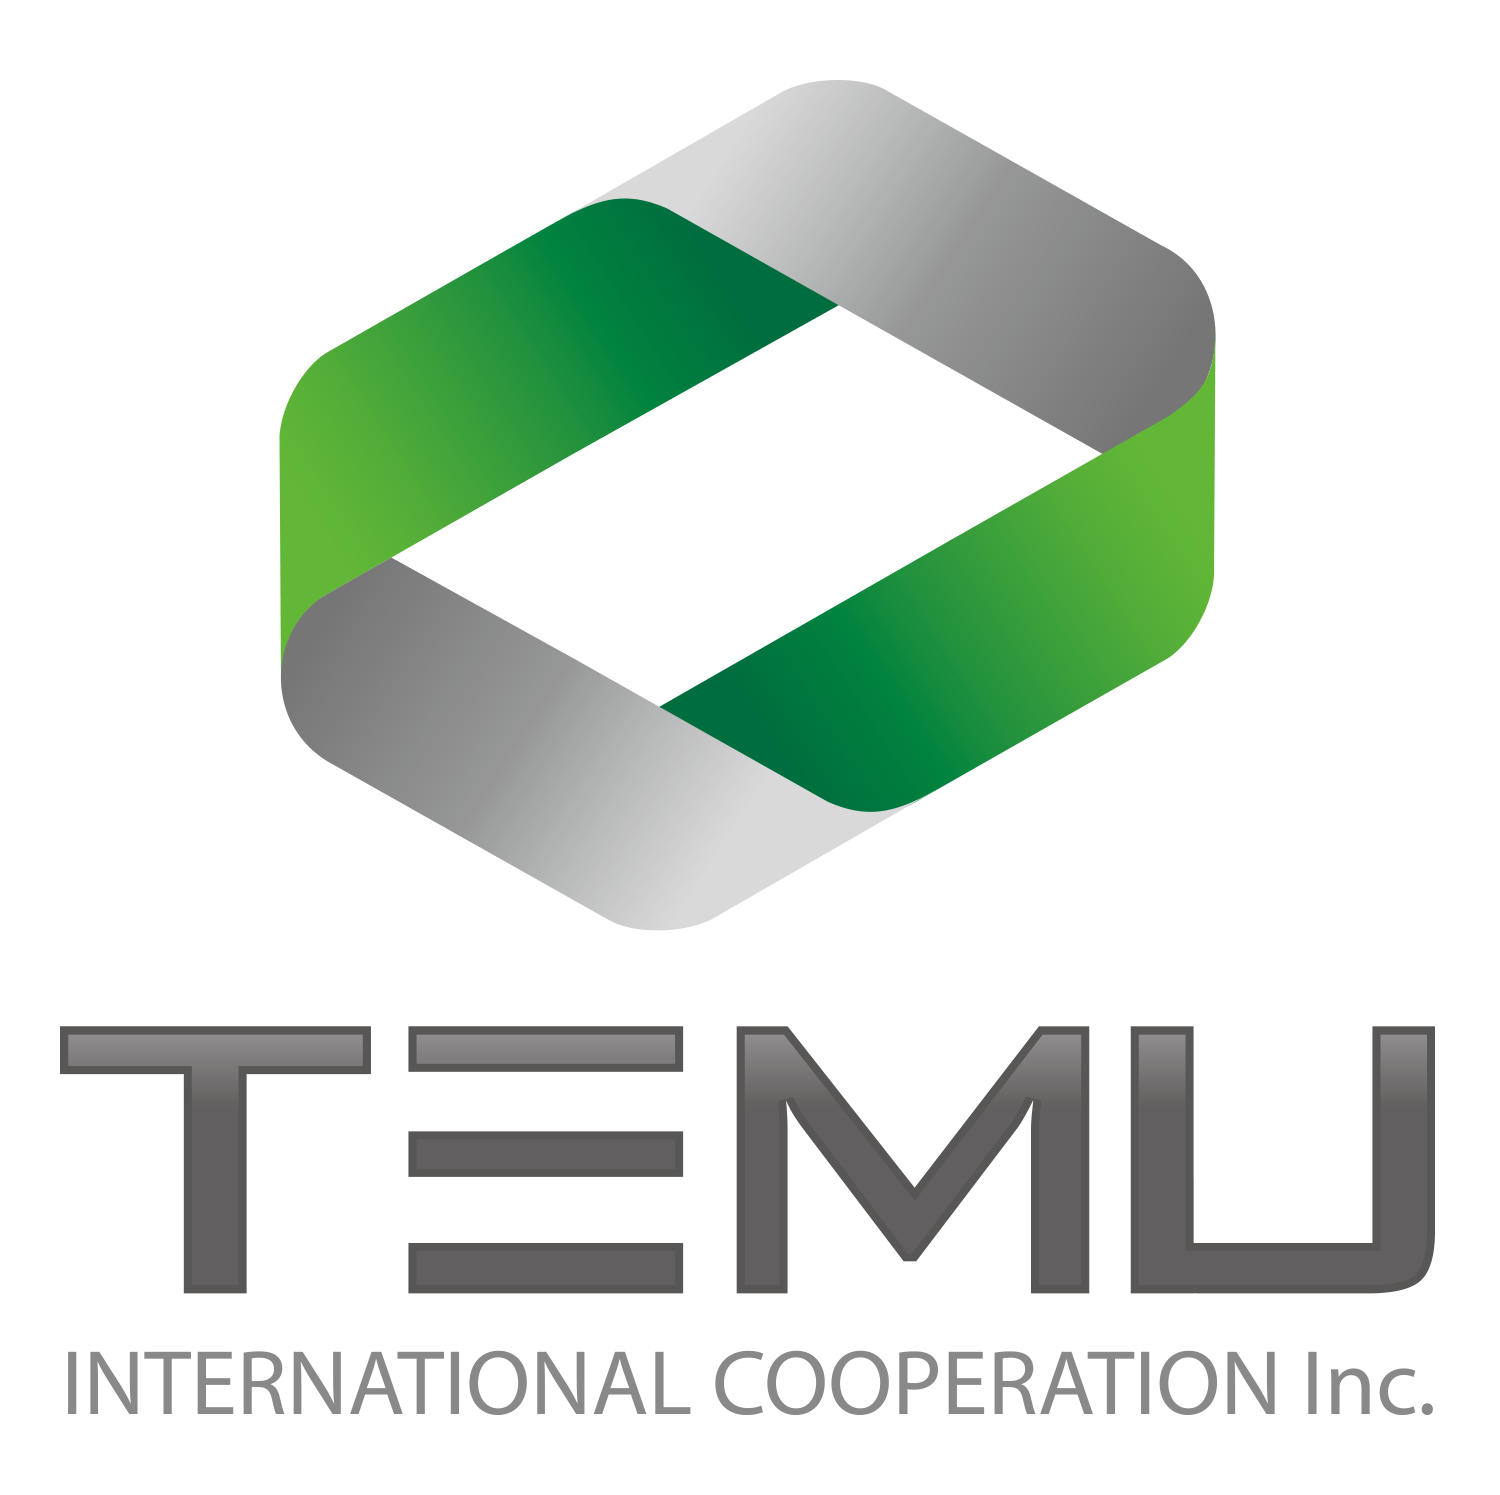 Temu International Cooperation Inc. 정보 보기